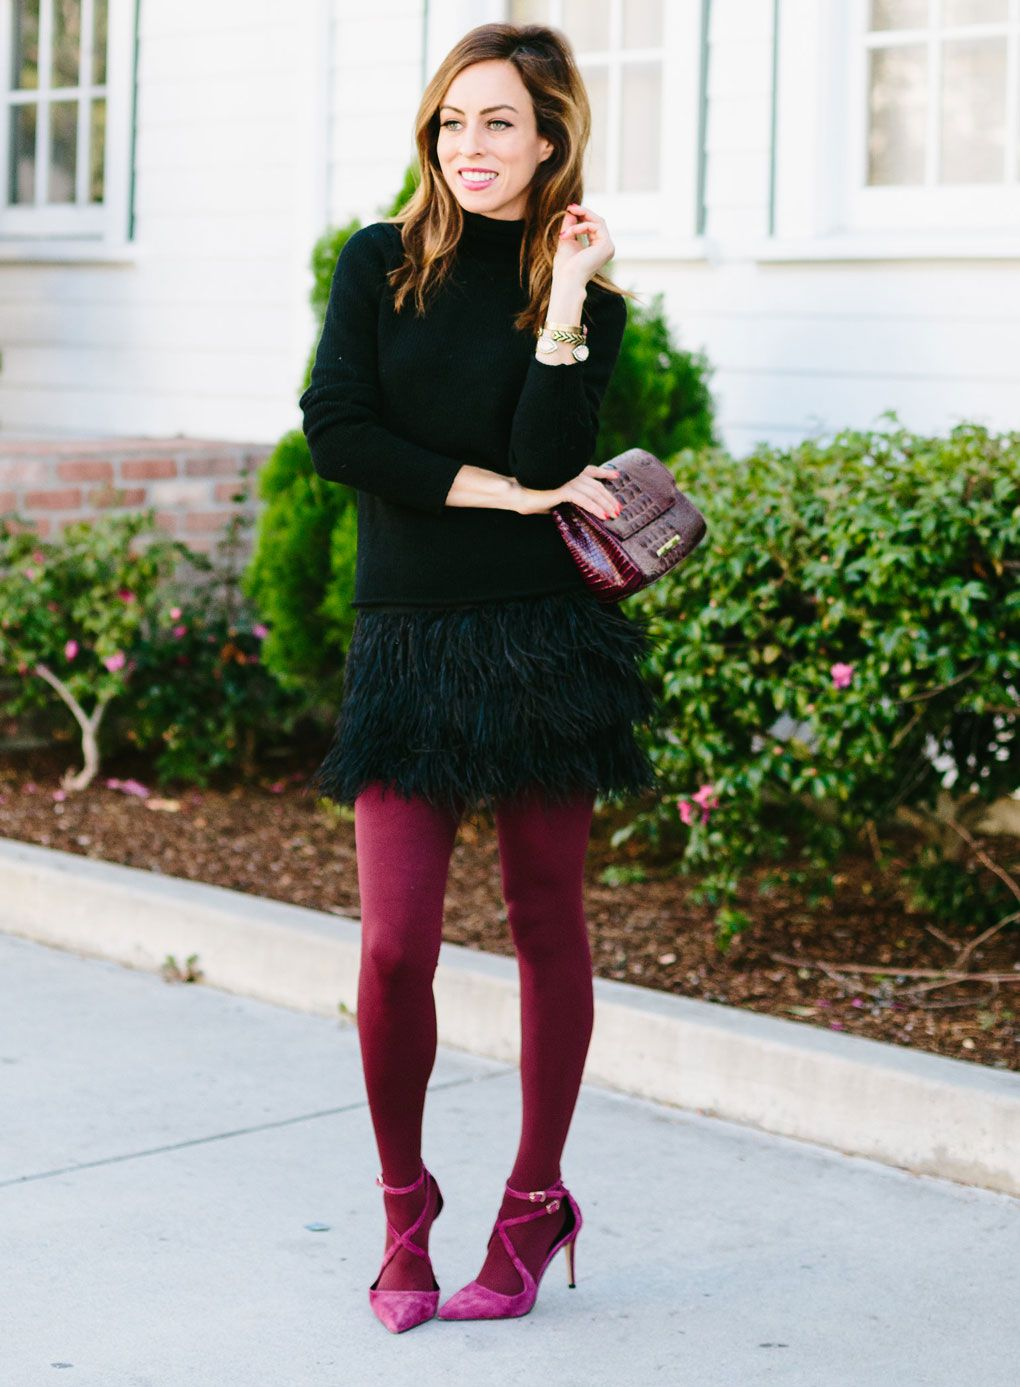 dbf3c0ee449 Two Holiday Party Outfit Ideas with Tights